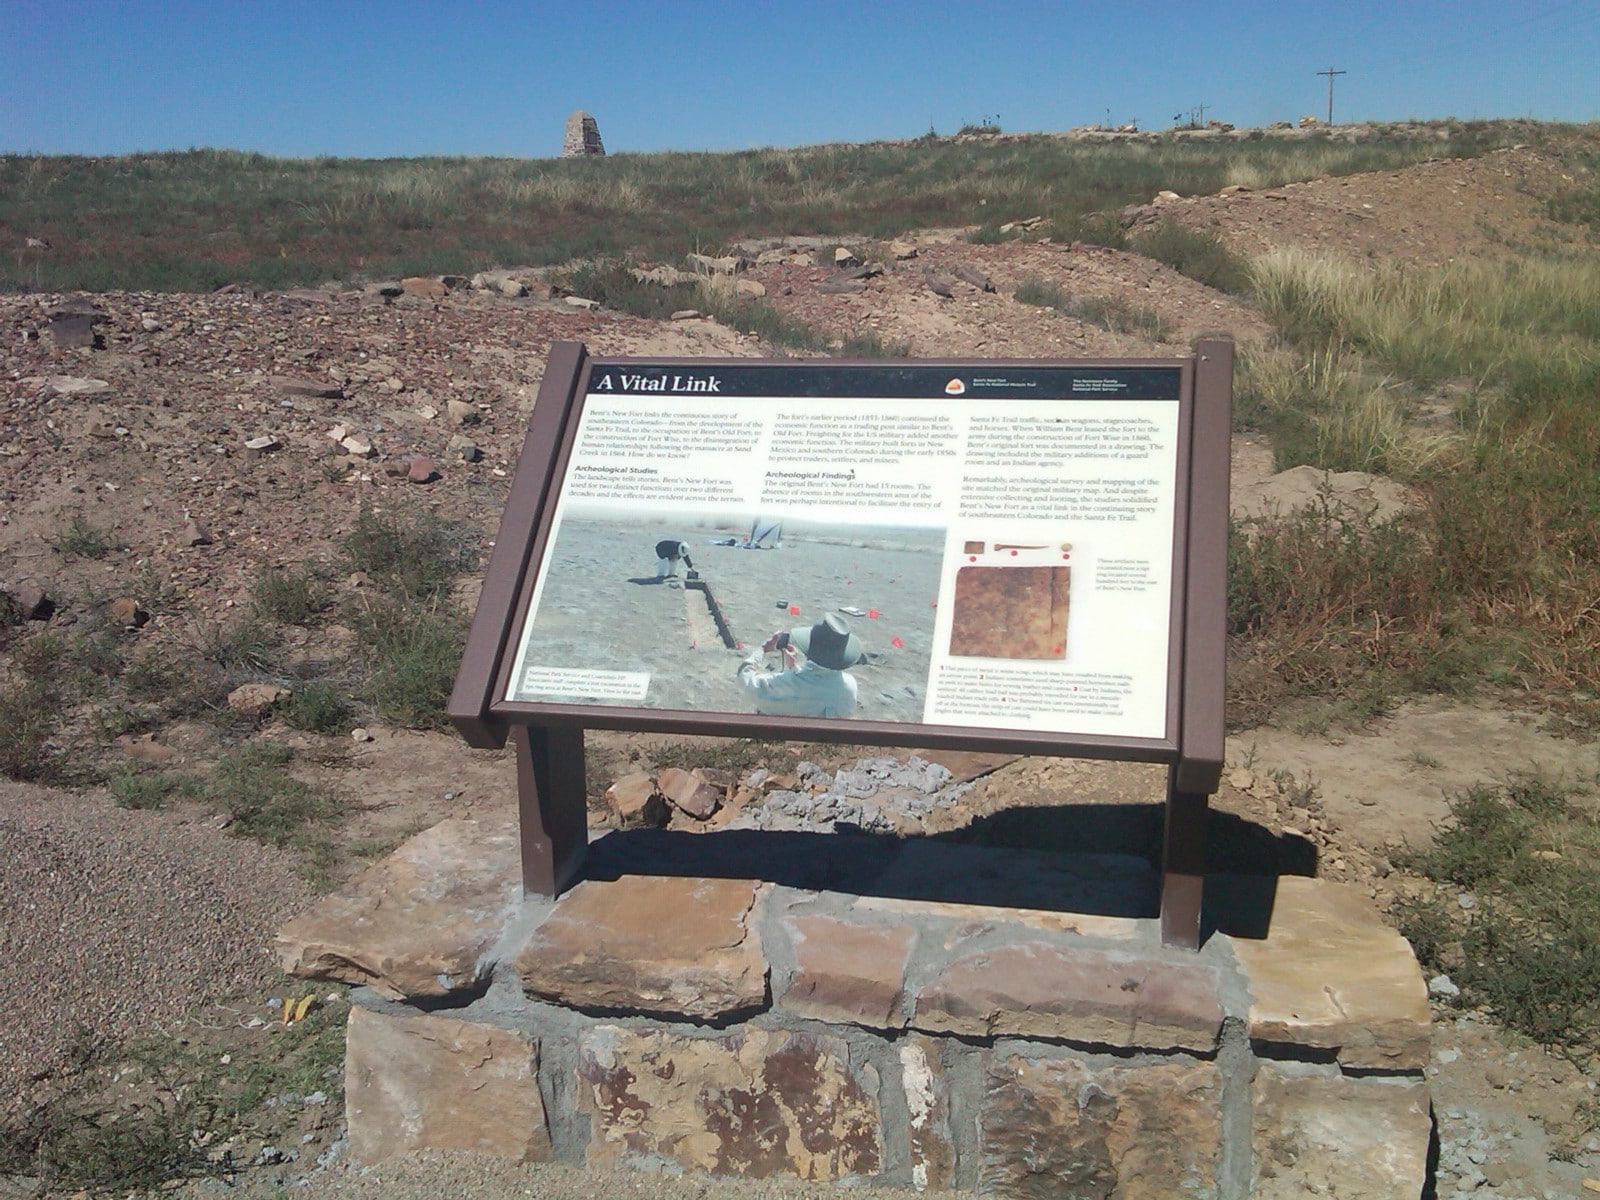 """Image of the """"A Vital Link"""" sign at Bent's New Fort in Lamar, Colorado"""